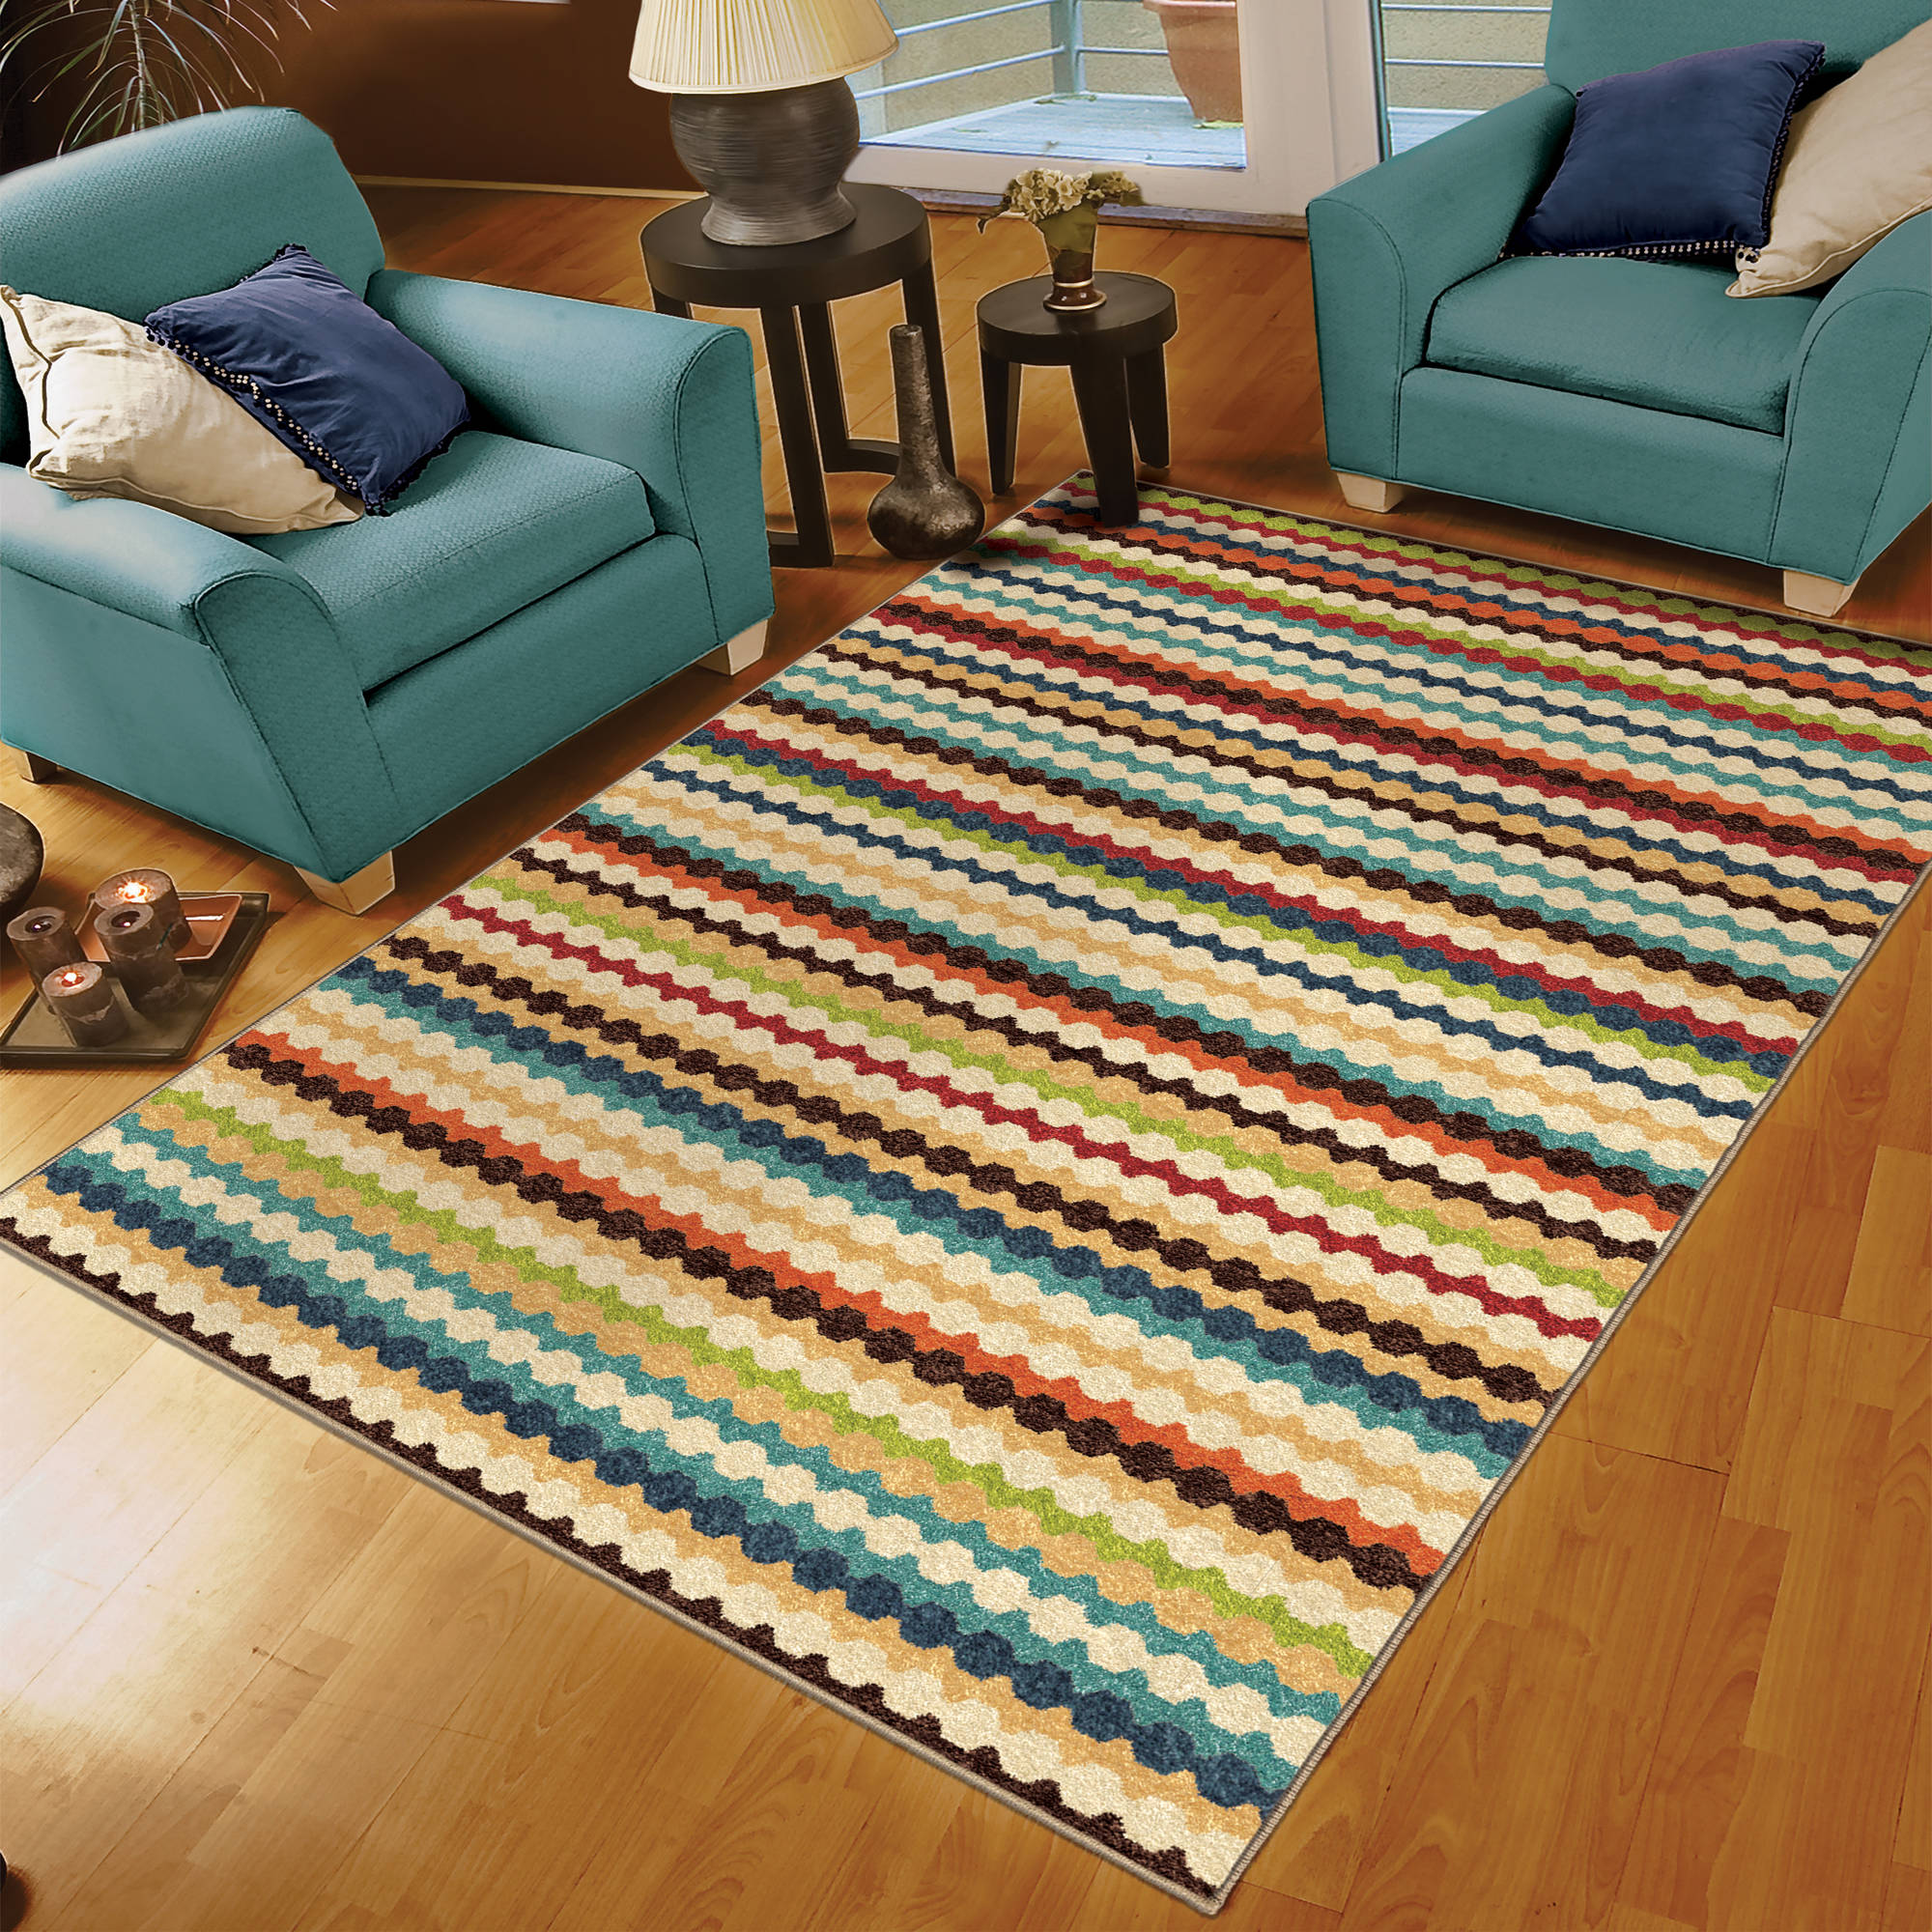 Orian Rugs Nik Nak Multi-Colored Area Rug or Runner